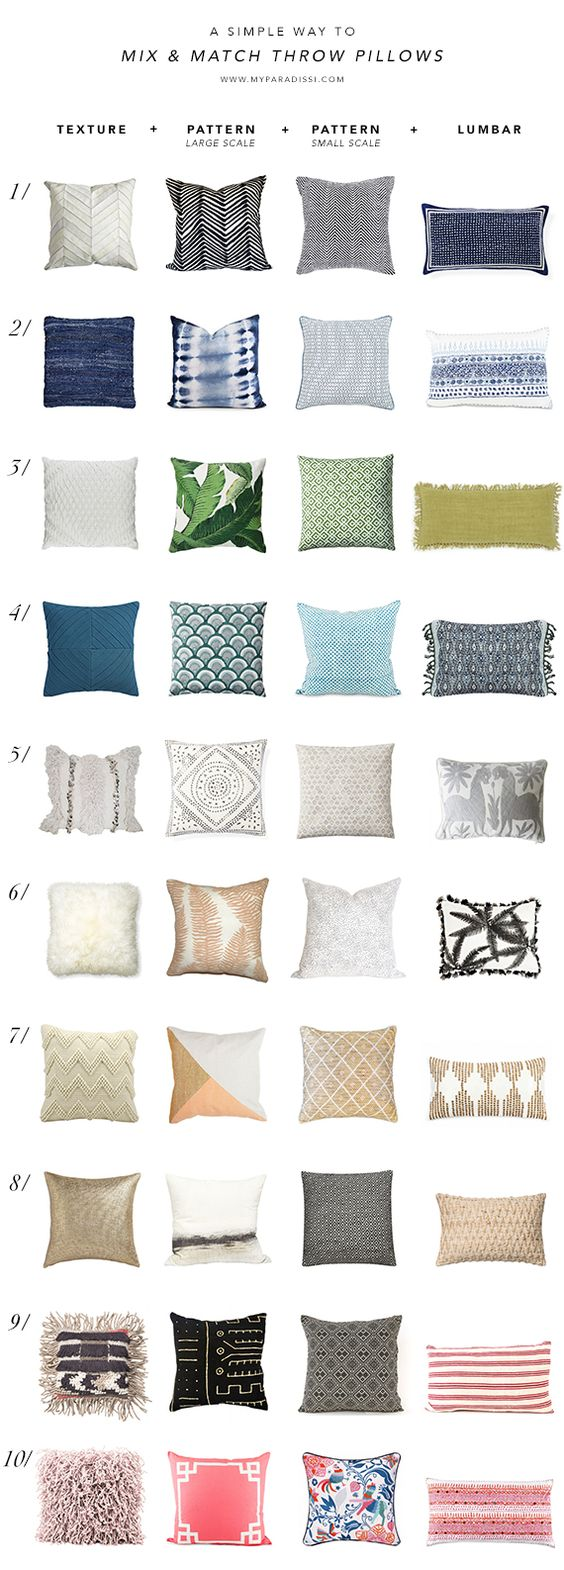 A simple way to mix and match throw pillows apt redesign - Living room curtains with matching pillows ...